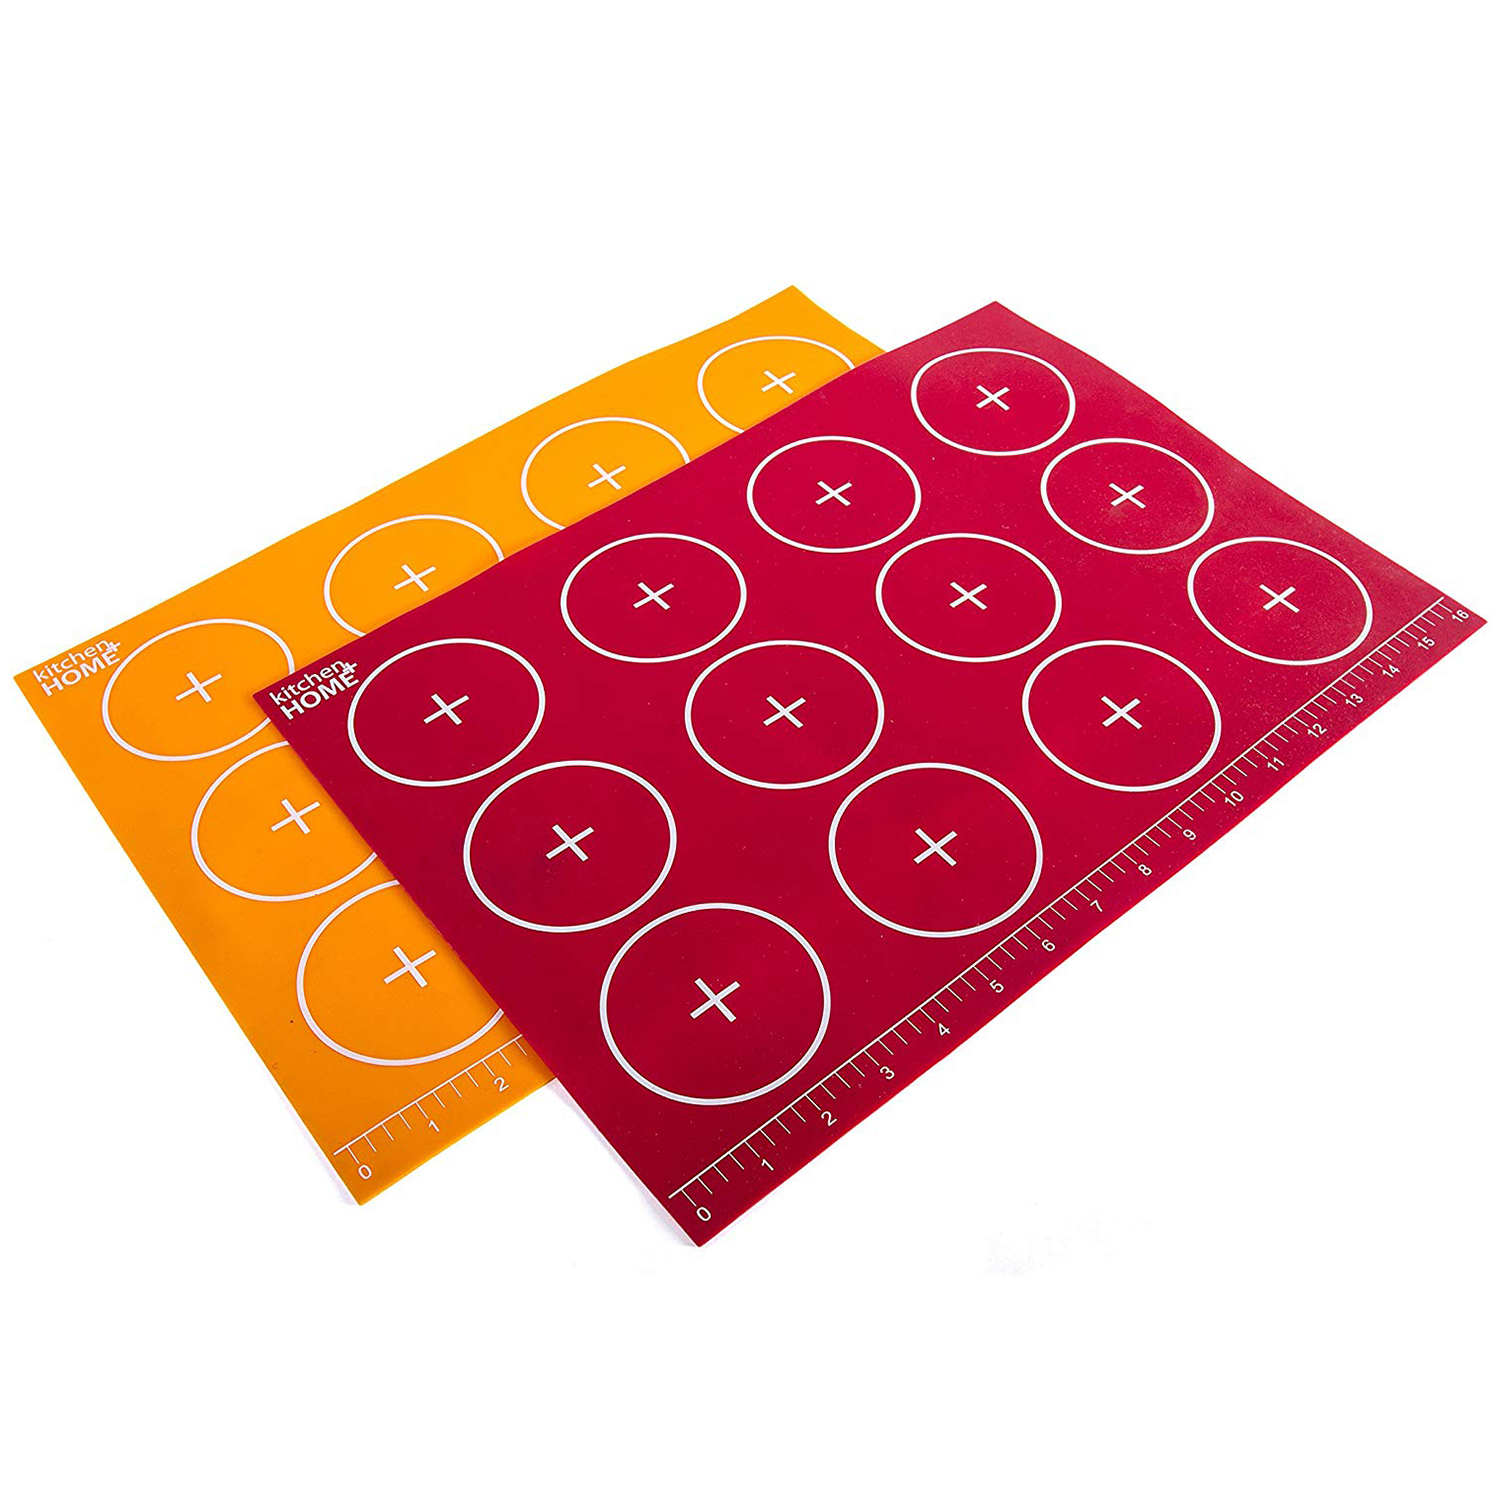 Kitchen + Home Silicone Baking Mats Set of 2 Non-stick